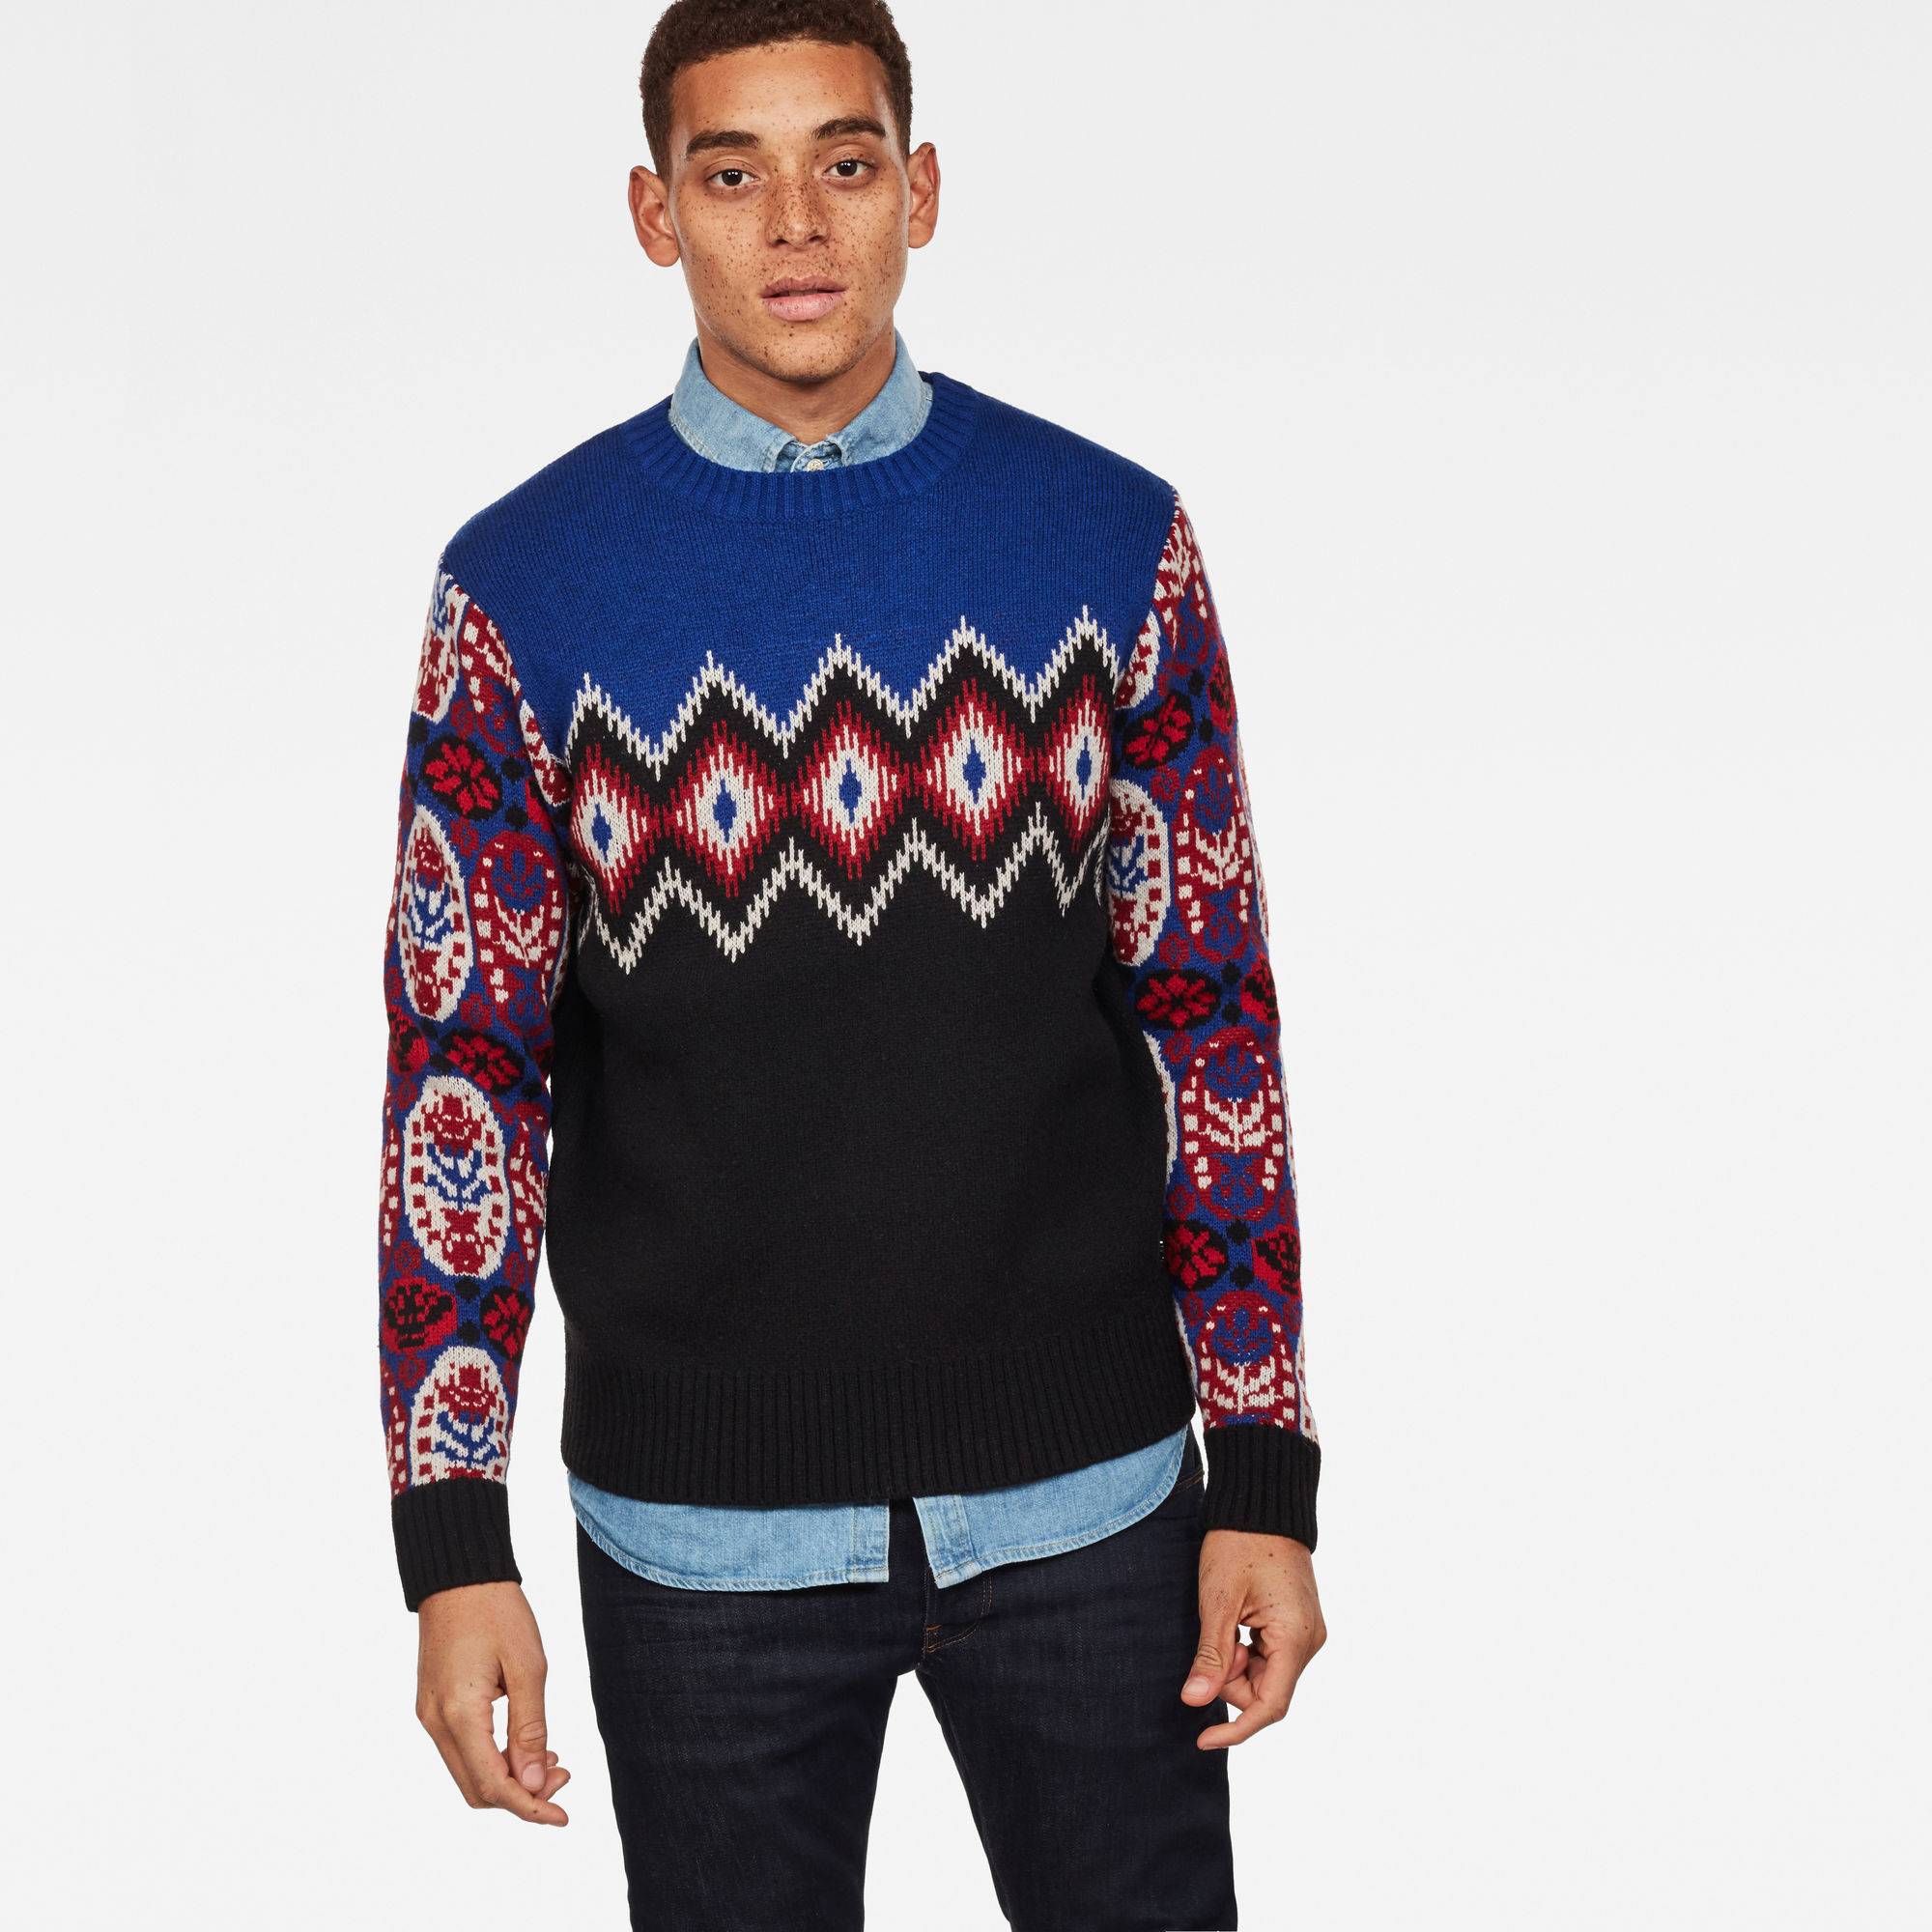 Image of G Star Raw Jayvi Jacquard Knit